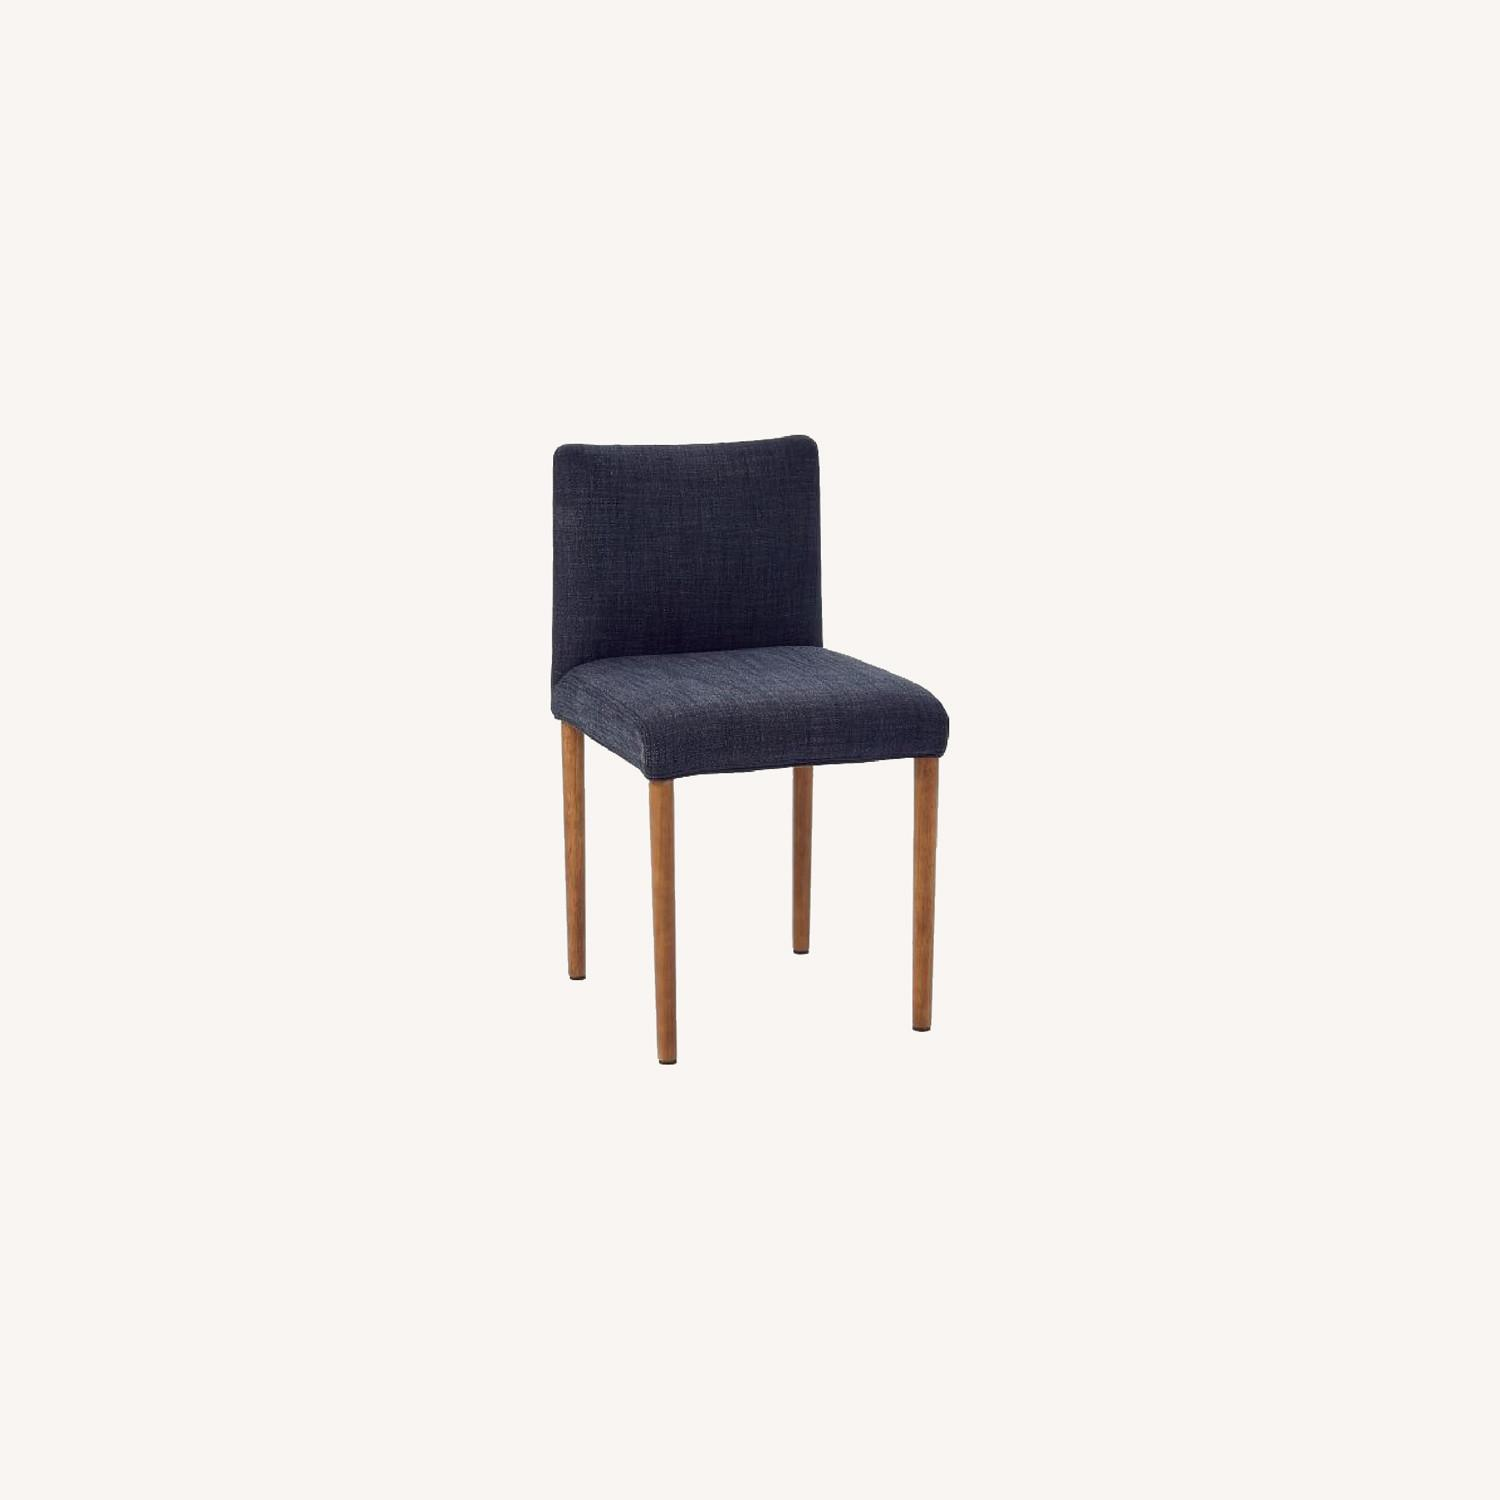 West Elm Upholstered Dining Chair - image-0